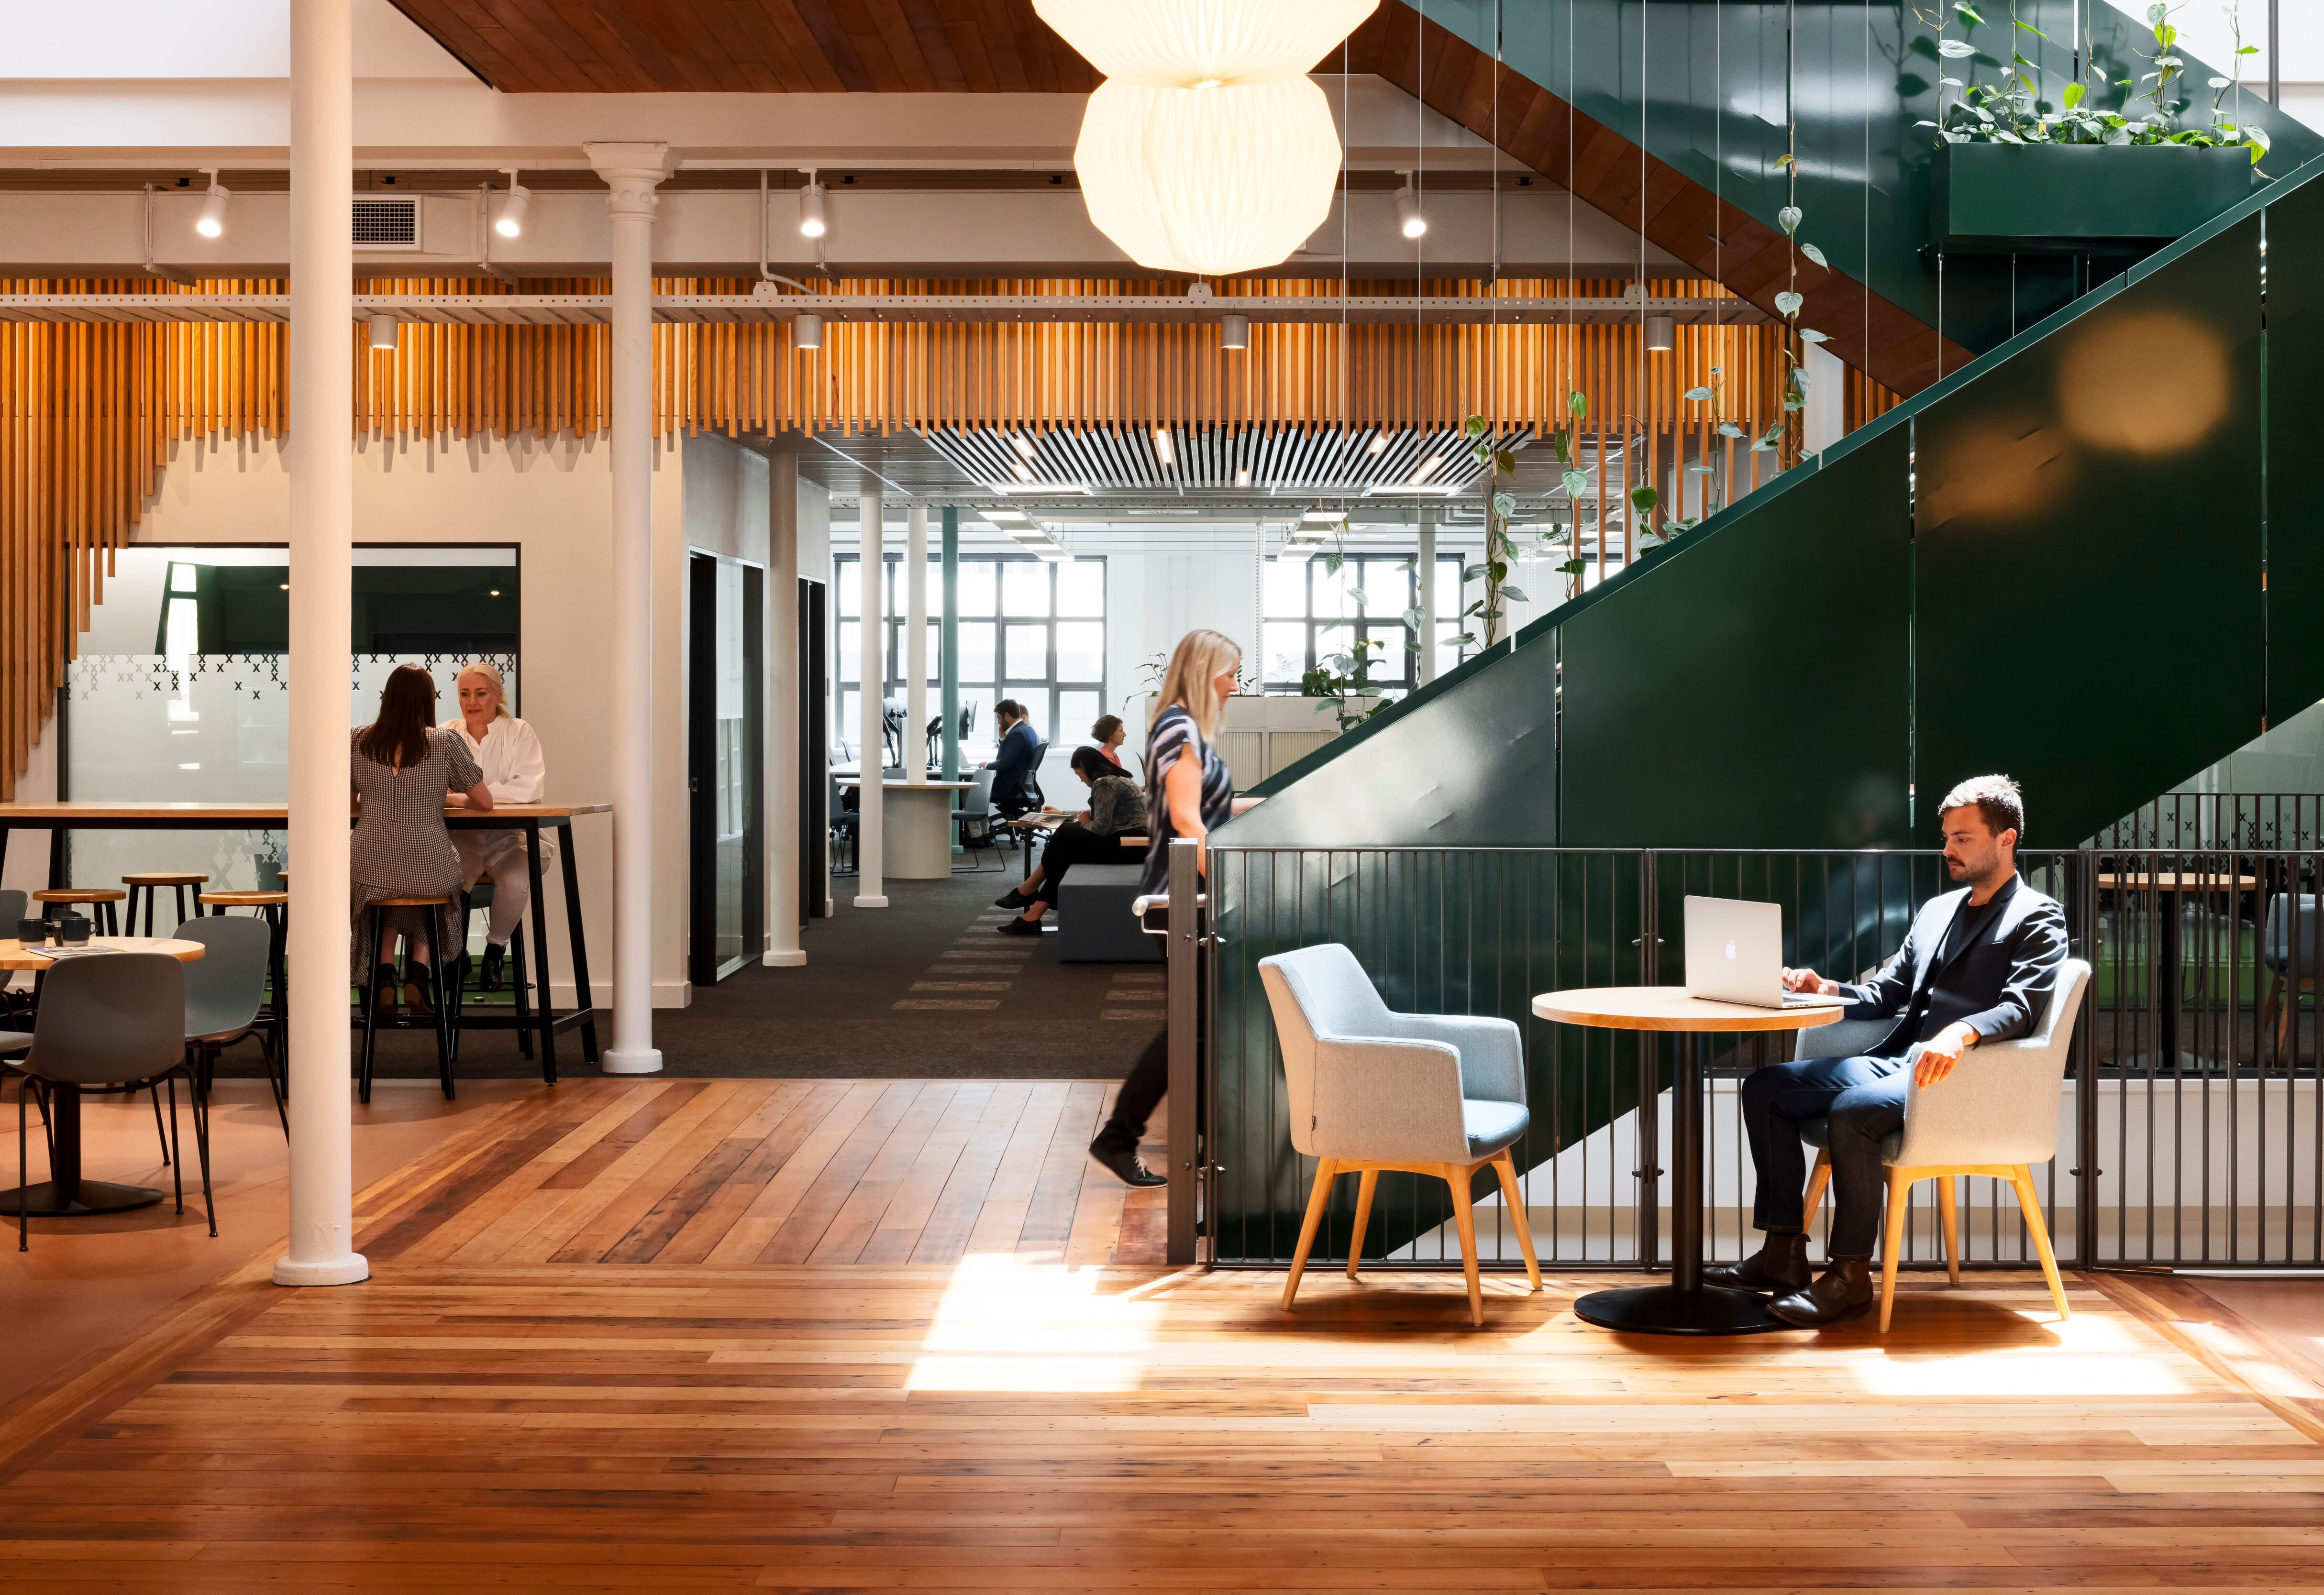 Tables, leaners and soft seating creates differing zones for coworkers to gather and work.